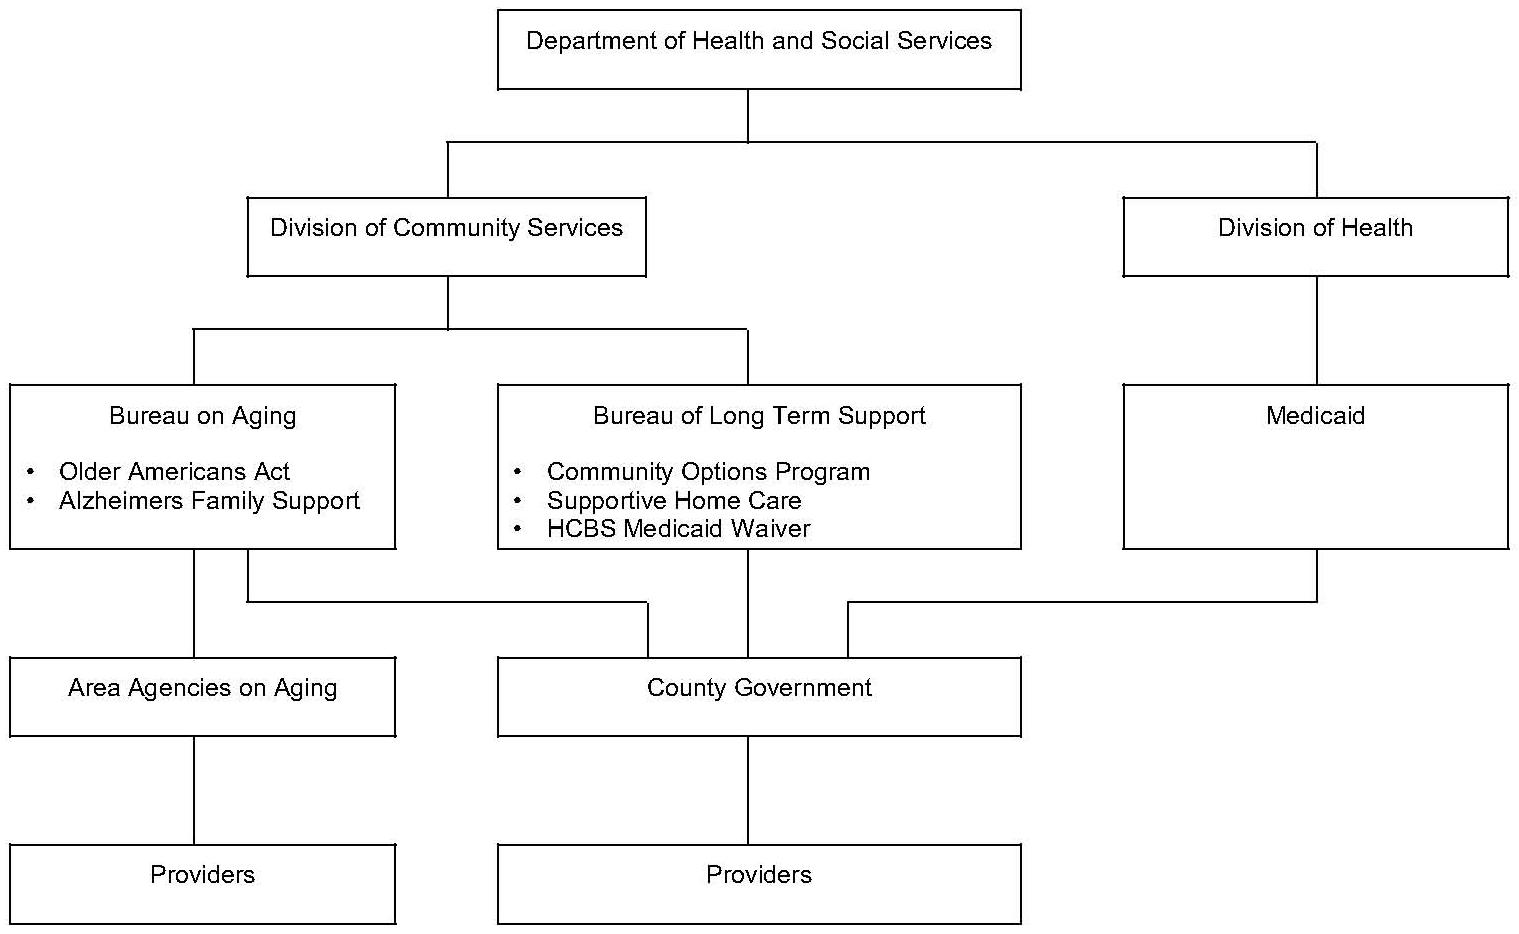 Organizational Chart: Wisconsin Organization of Community Care Services